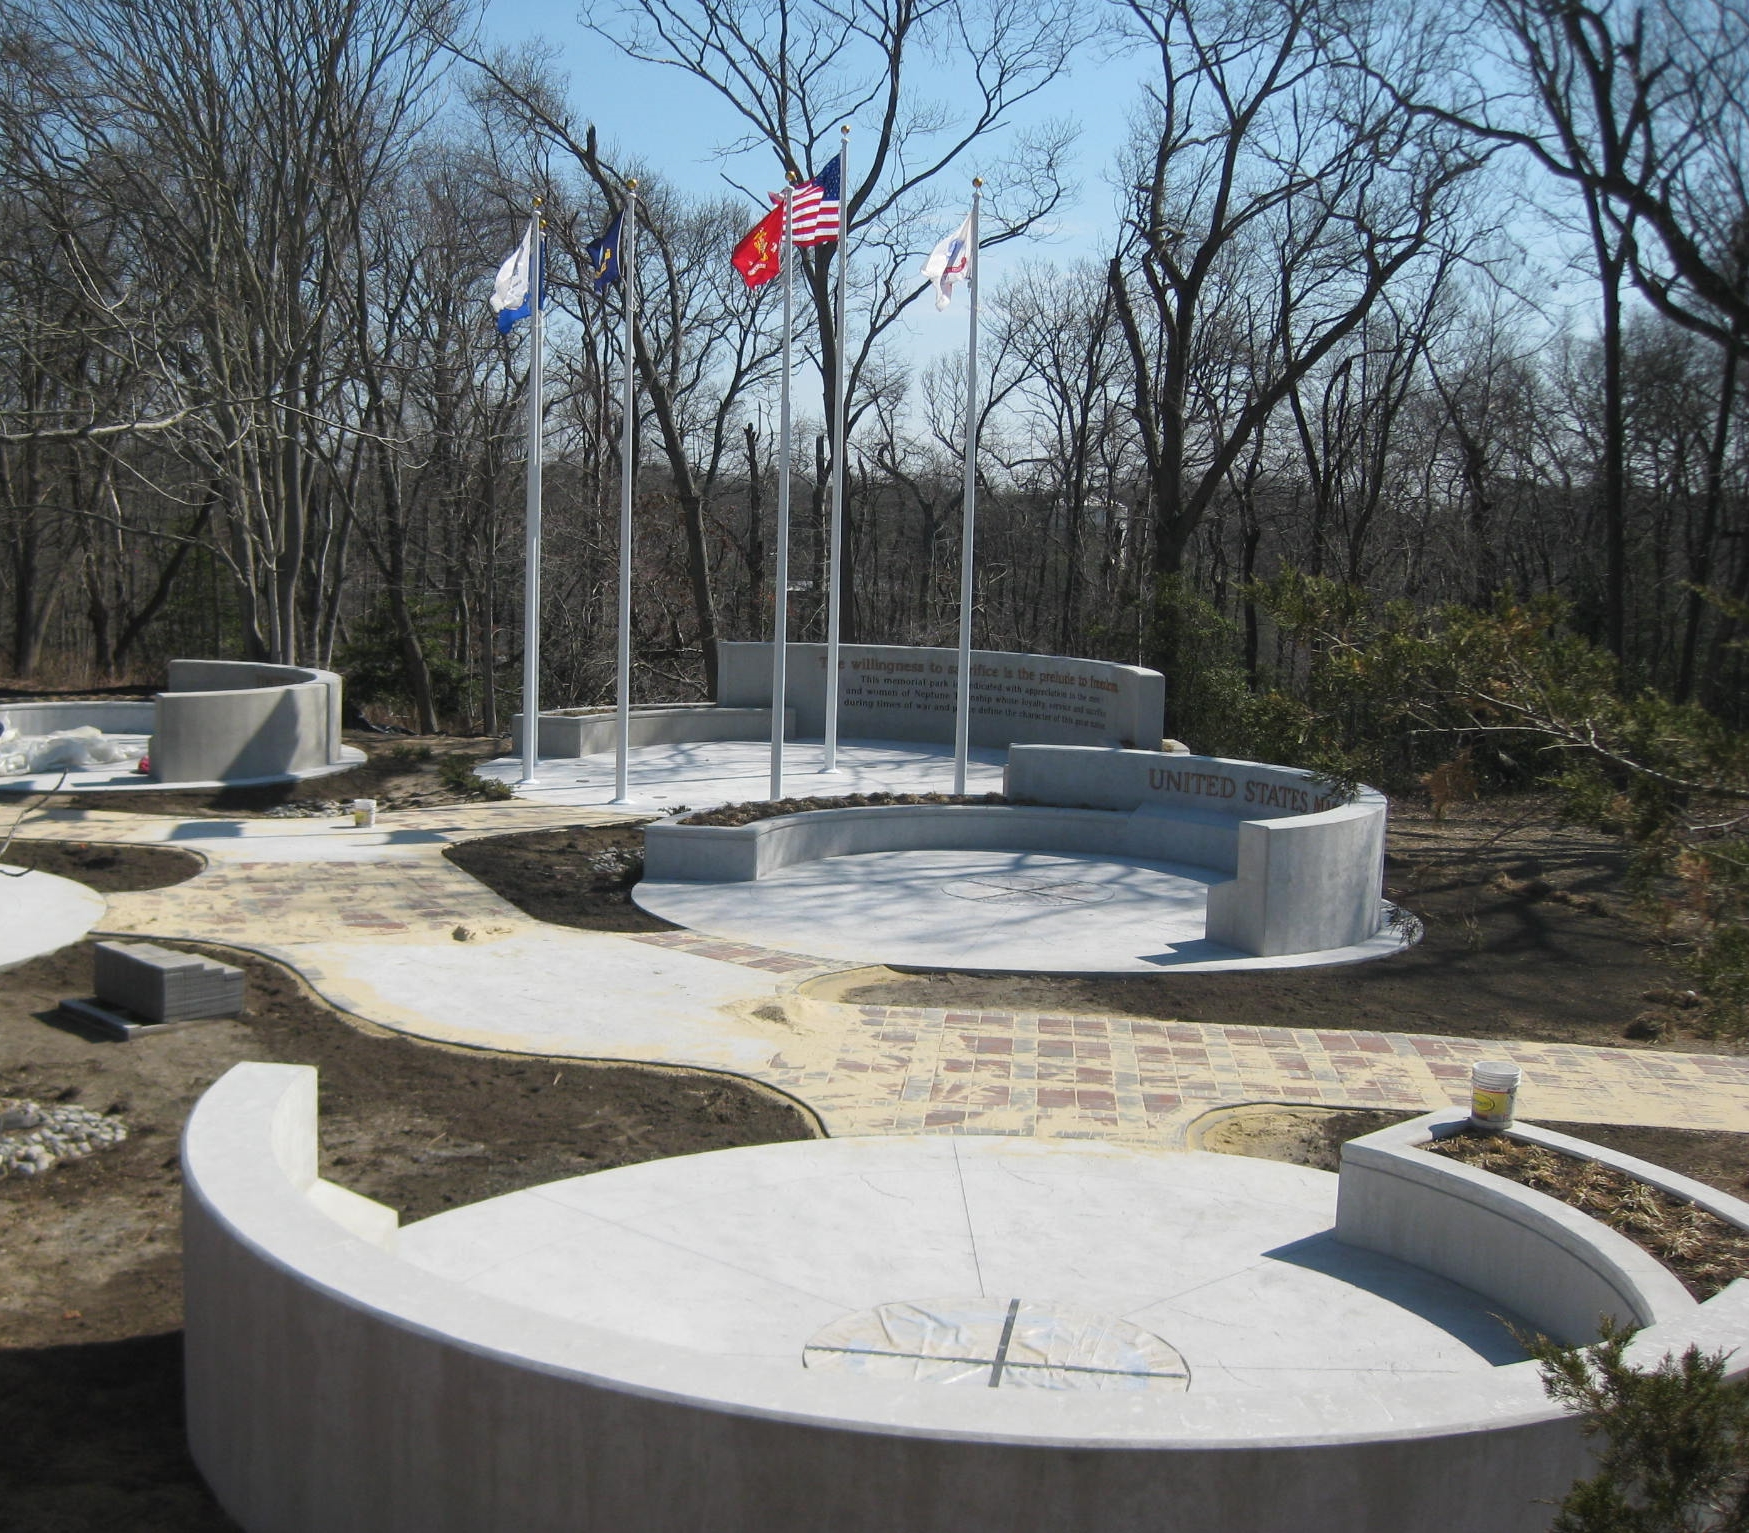 View of the curved walls and landscape underway at Veterans Memorial Park - Neptune, NJ